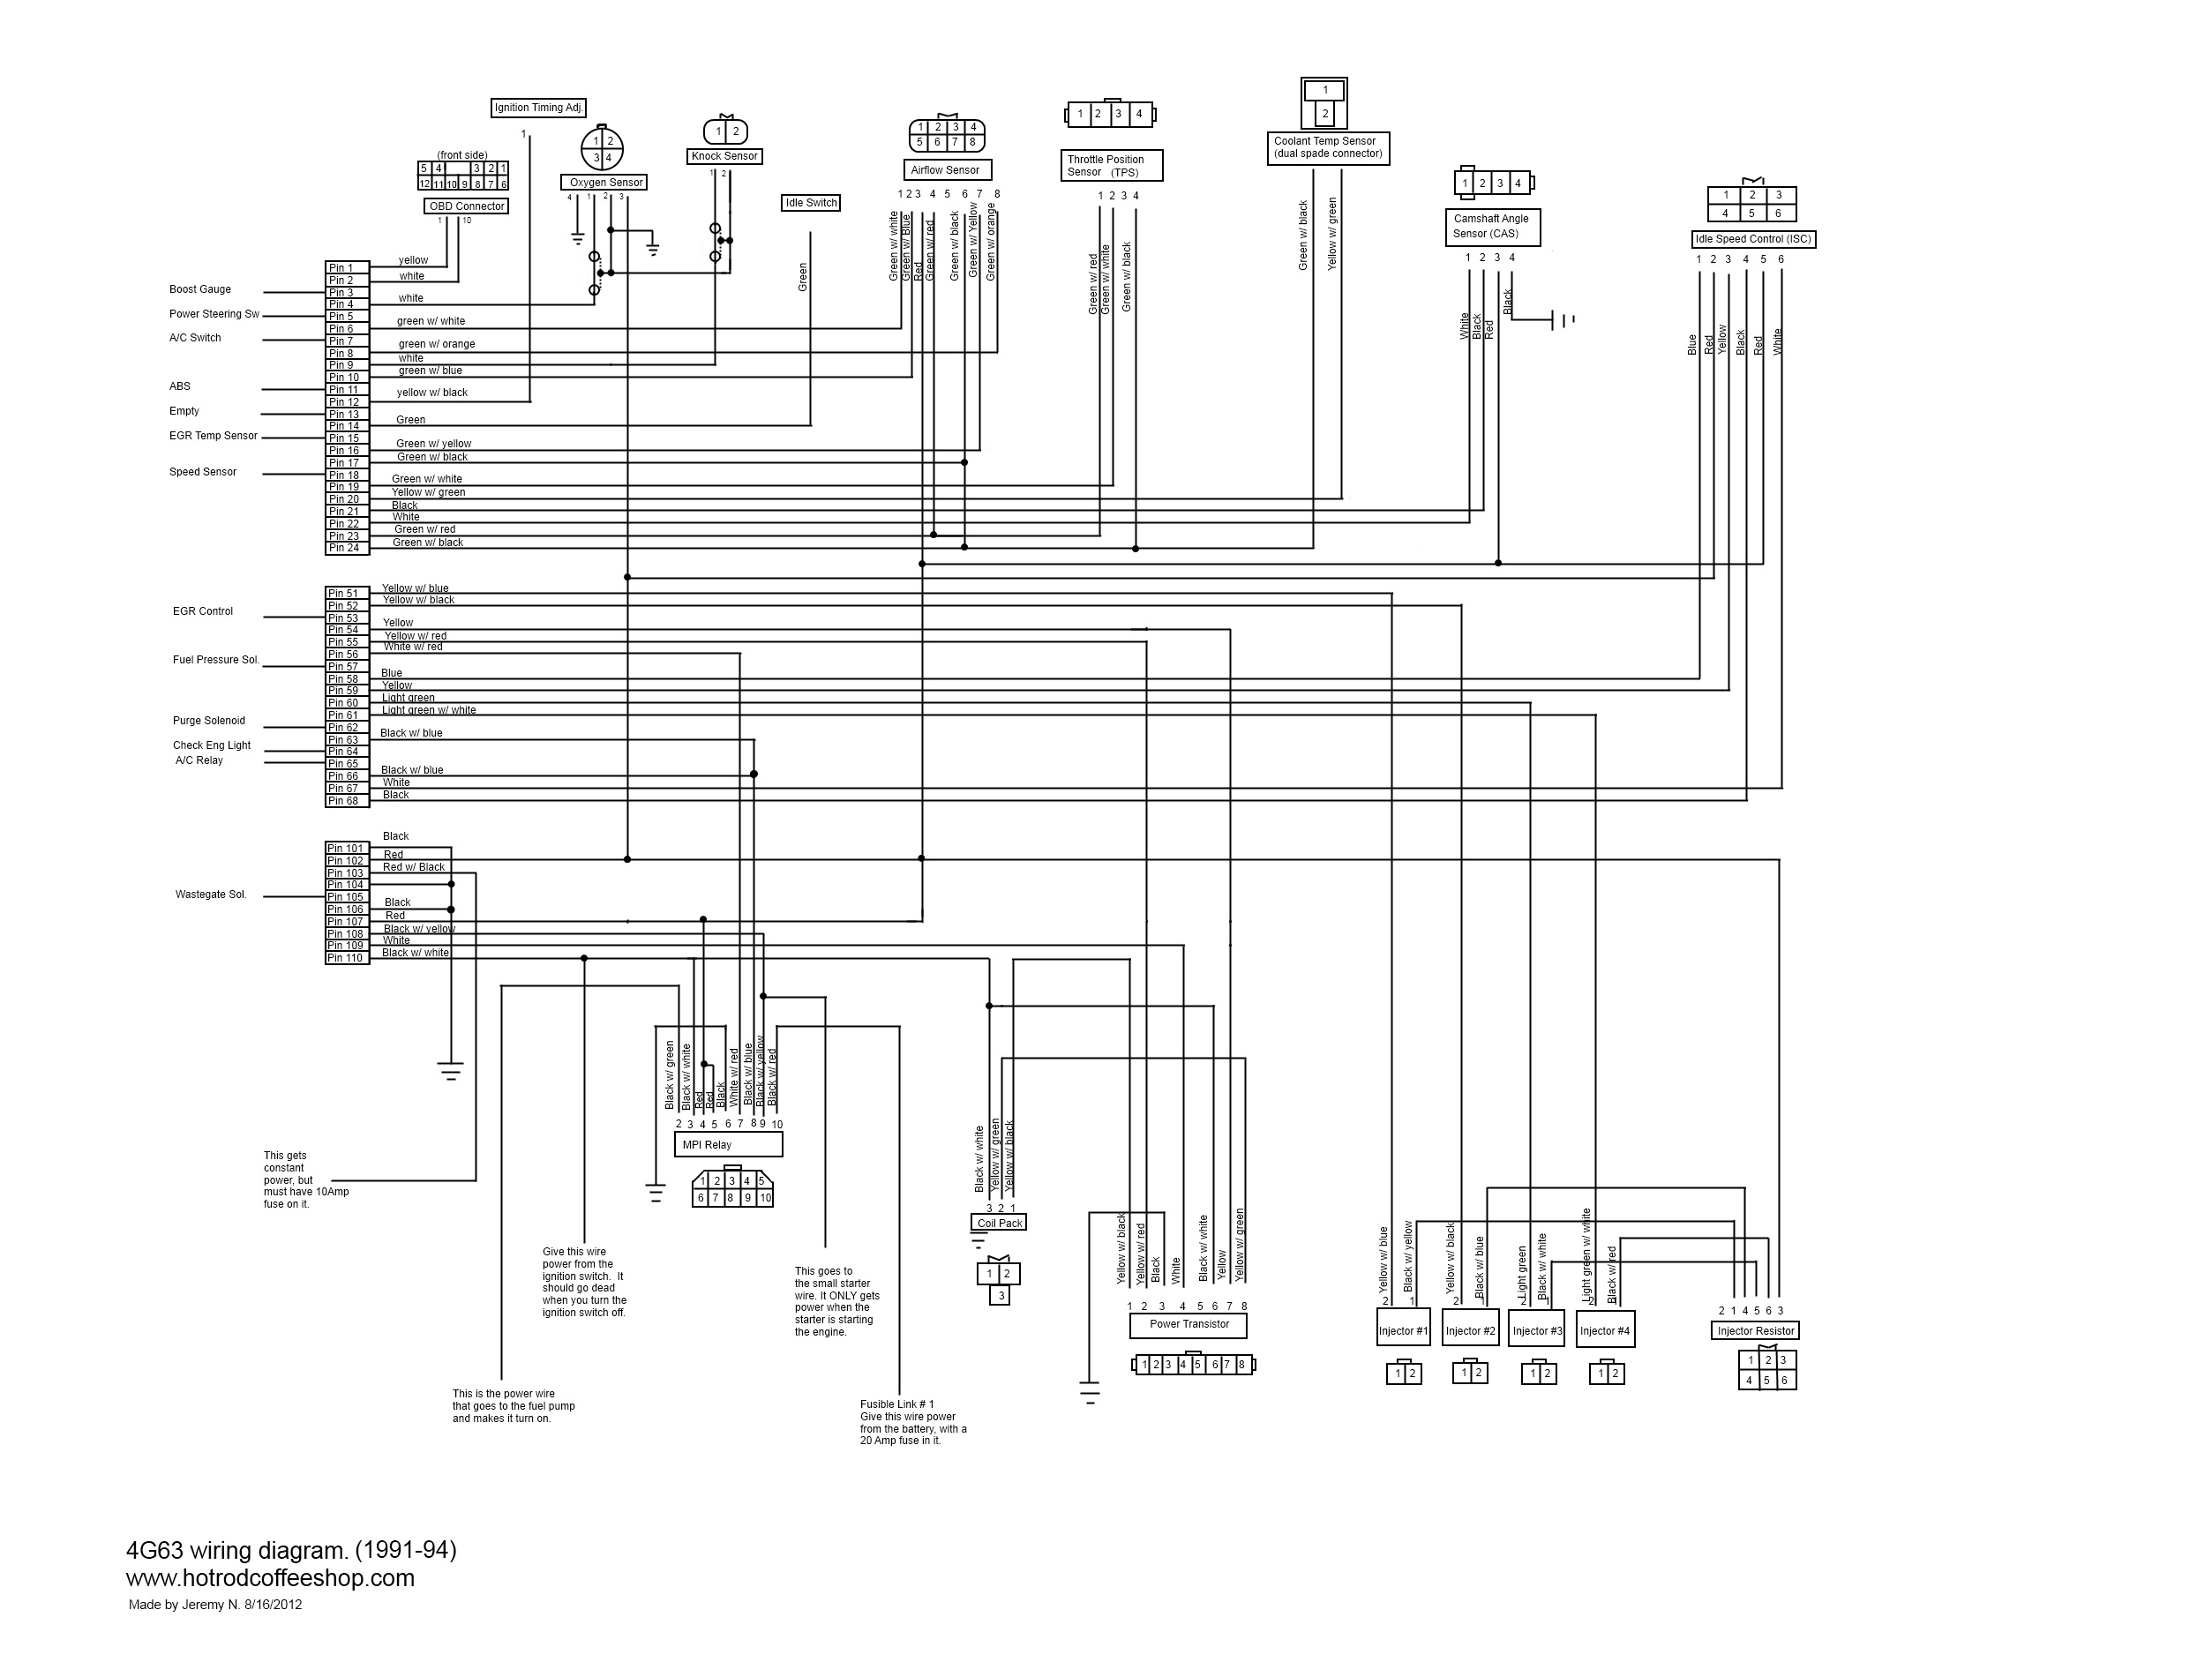 4g63 wiring diagrams schematics for engine swaps rh blog hotrodcoffeeshop com